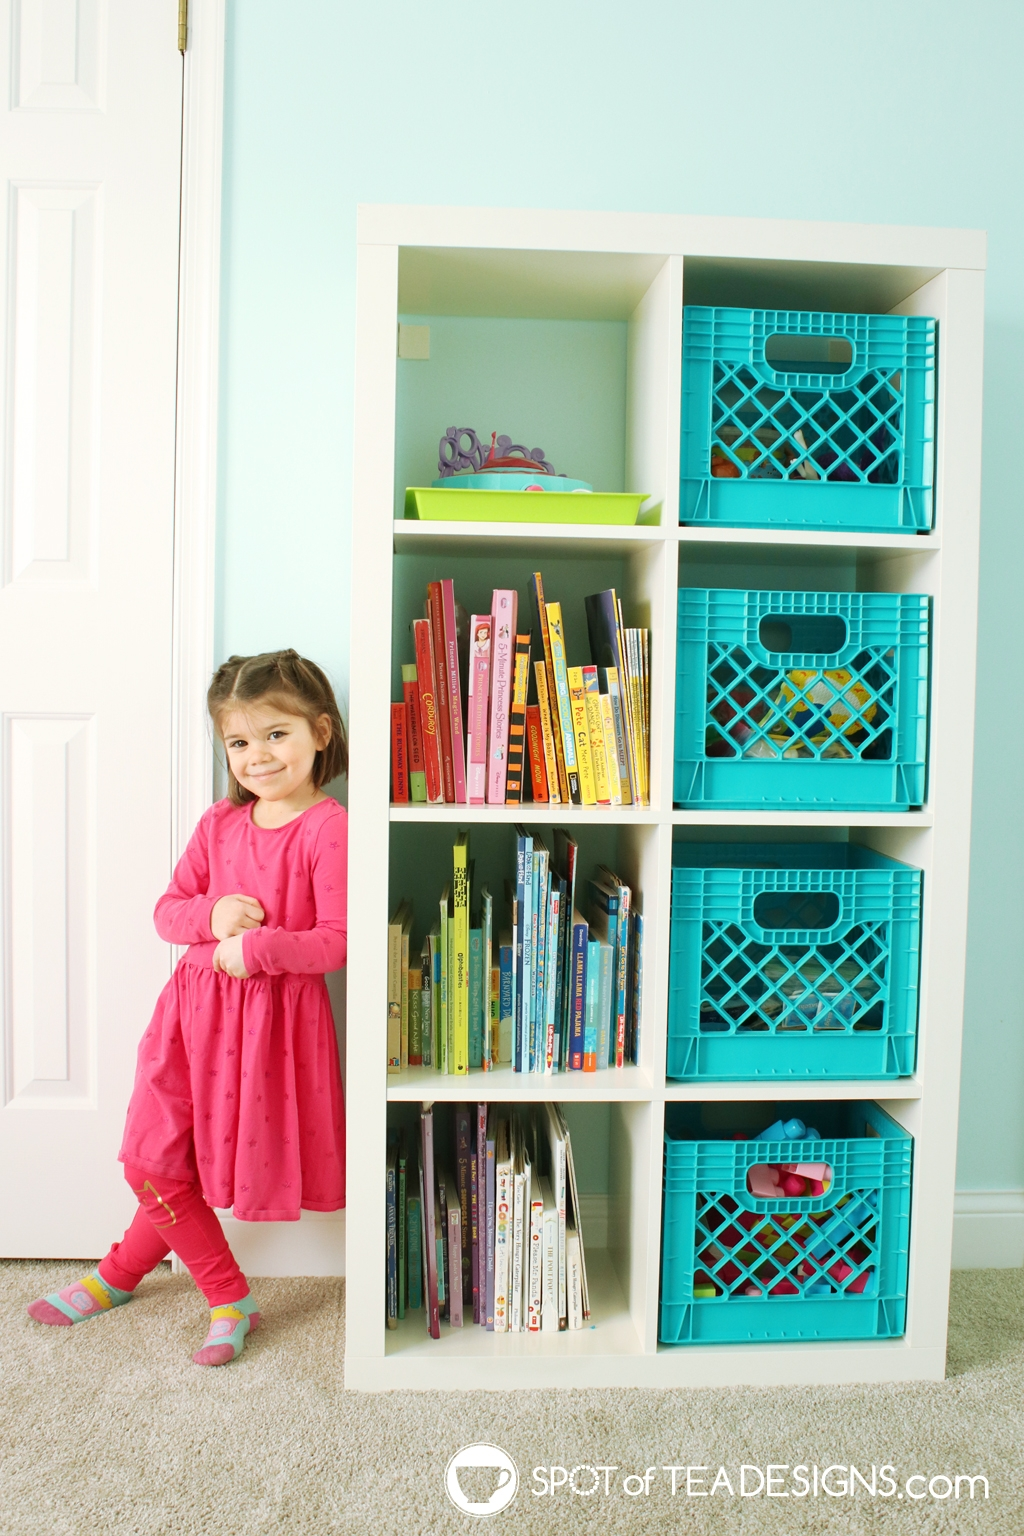 Home Tour - Preschooler's Mermaid Bedroom - books in rainbow order | spotofteadesigns.com